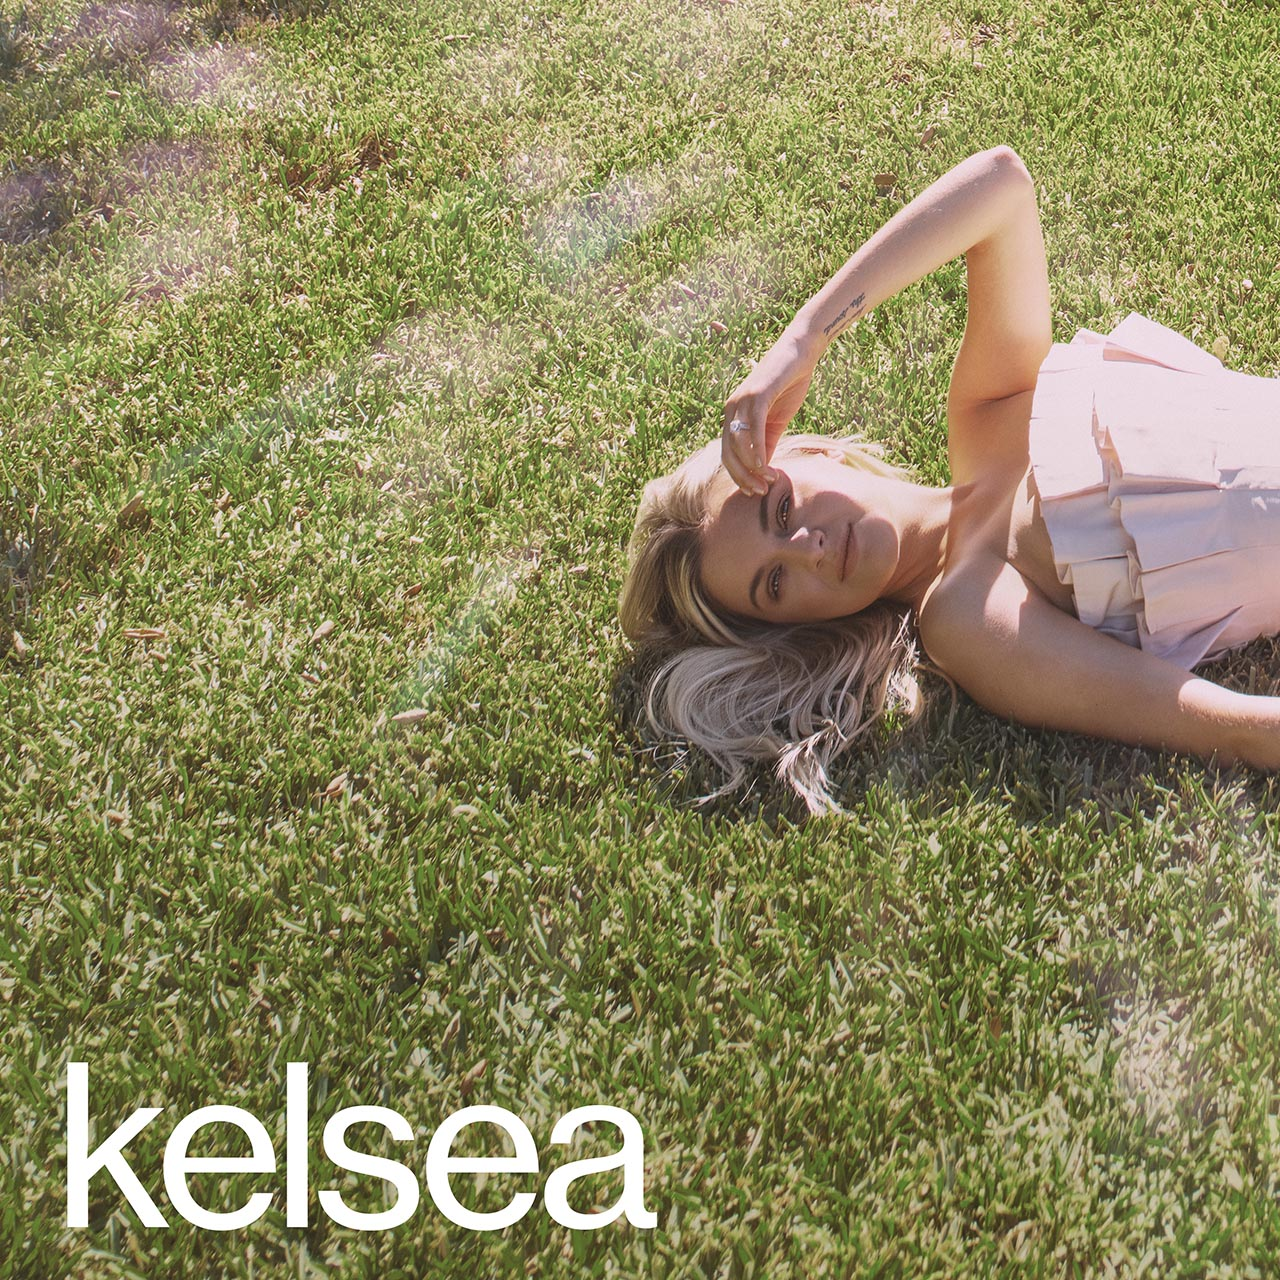 kelsea kelsea | available 03.20.20